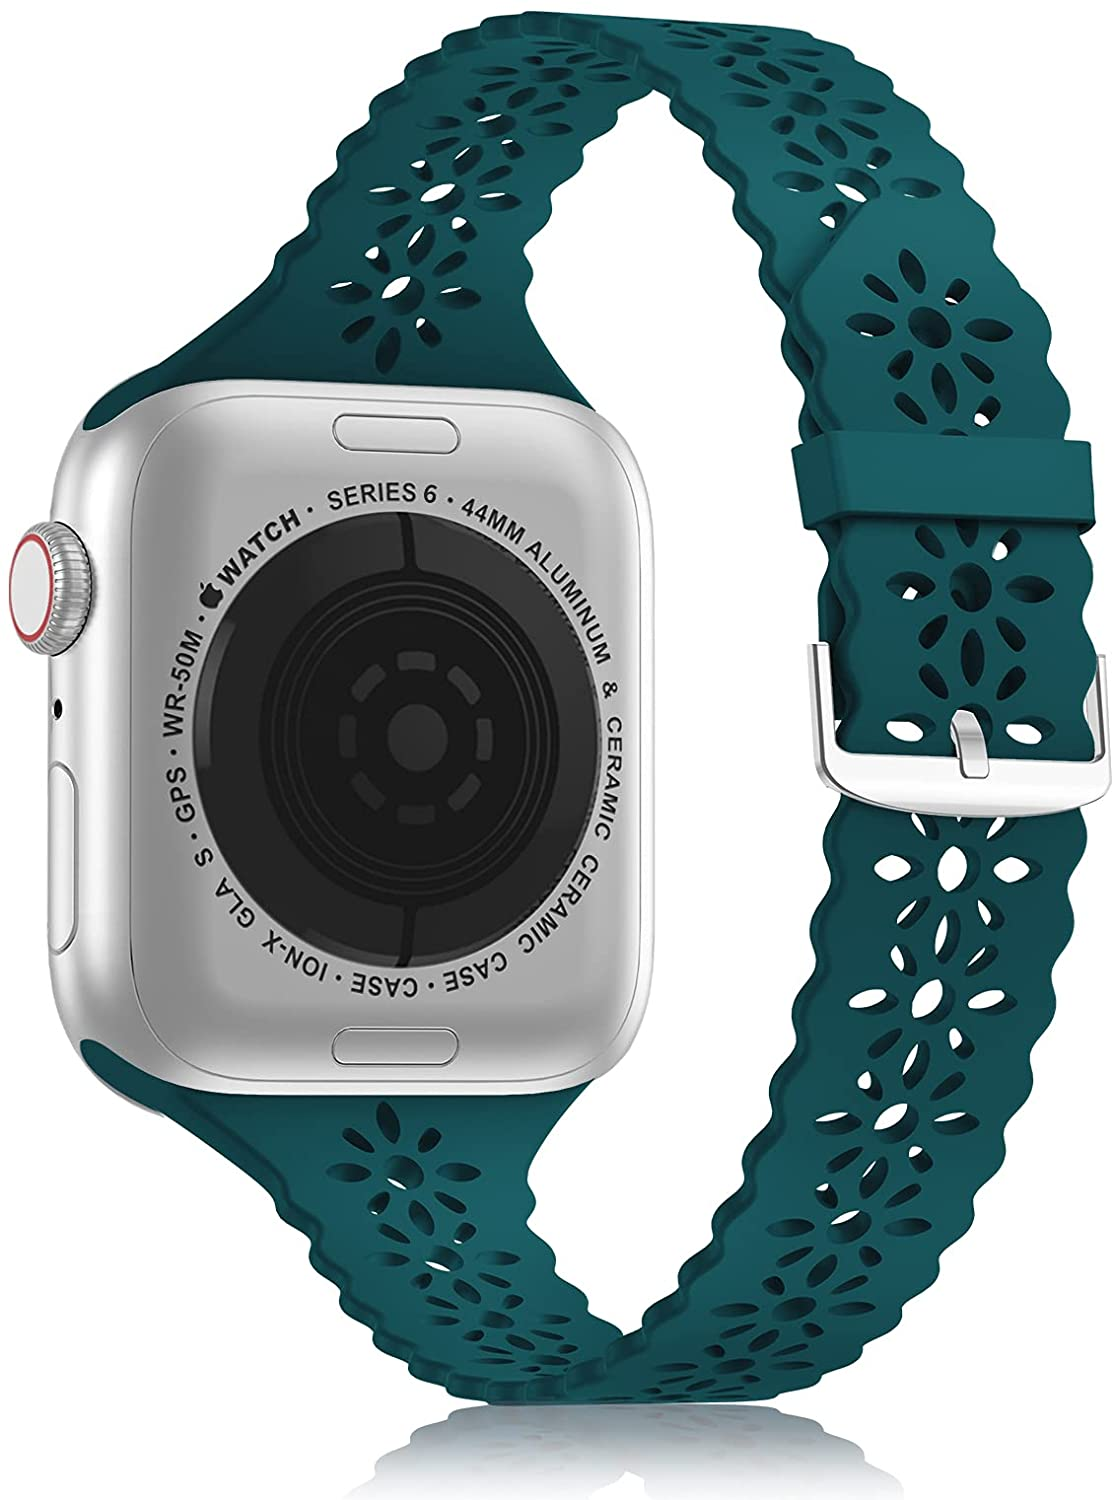 YAXIN Lace Silicone Band Compatible with Apple Watch Band 38mm 40mm 42mm 44mm Women, Slim Narrow Thin Hollowed-out Scalloped Sport Band Replacement Strap for iWatch Series 6 5 4 3 2 1 SE, Dark Green